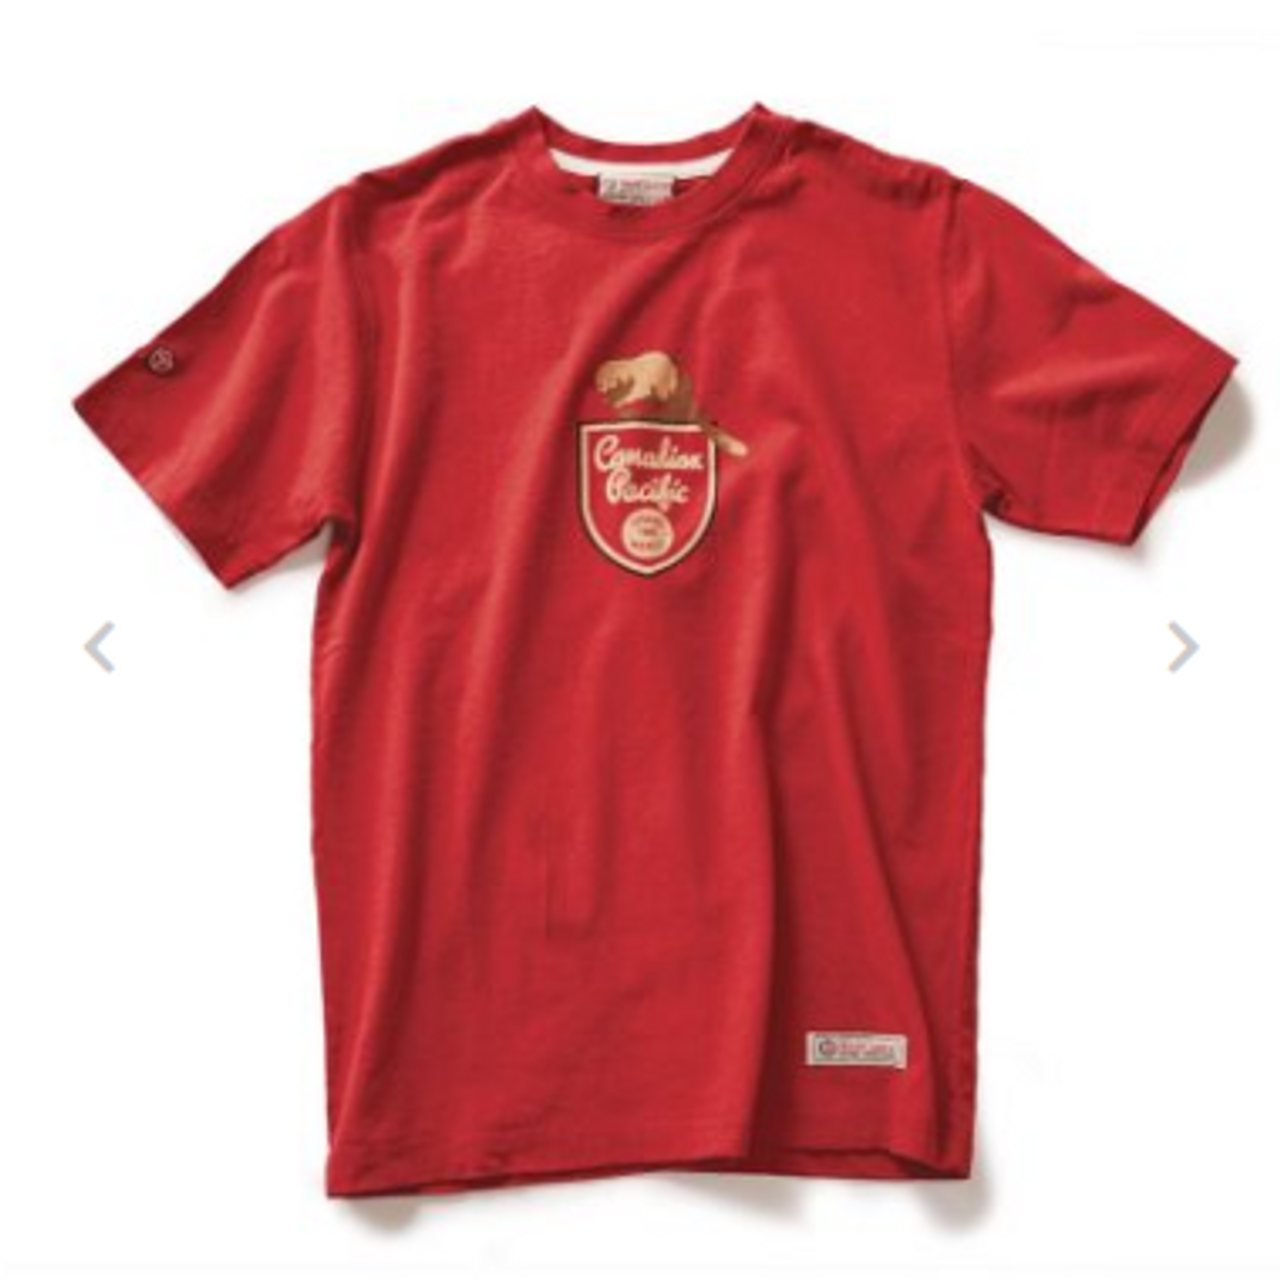 Canadian Pacific T-Shirt